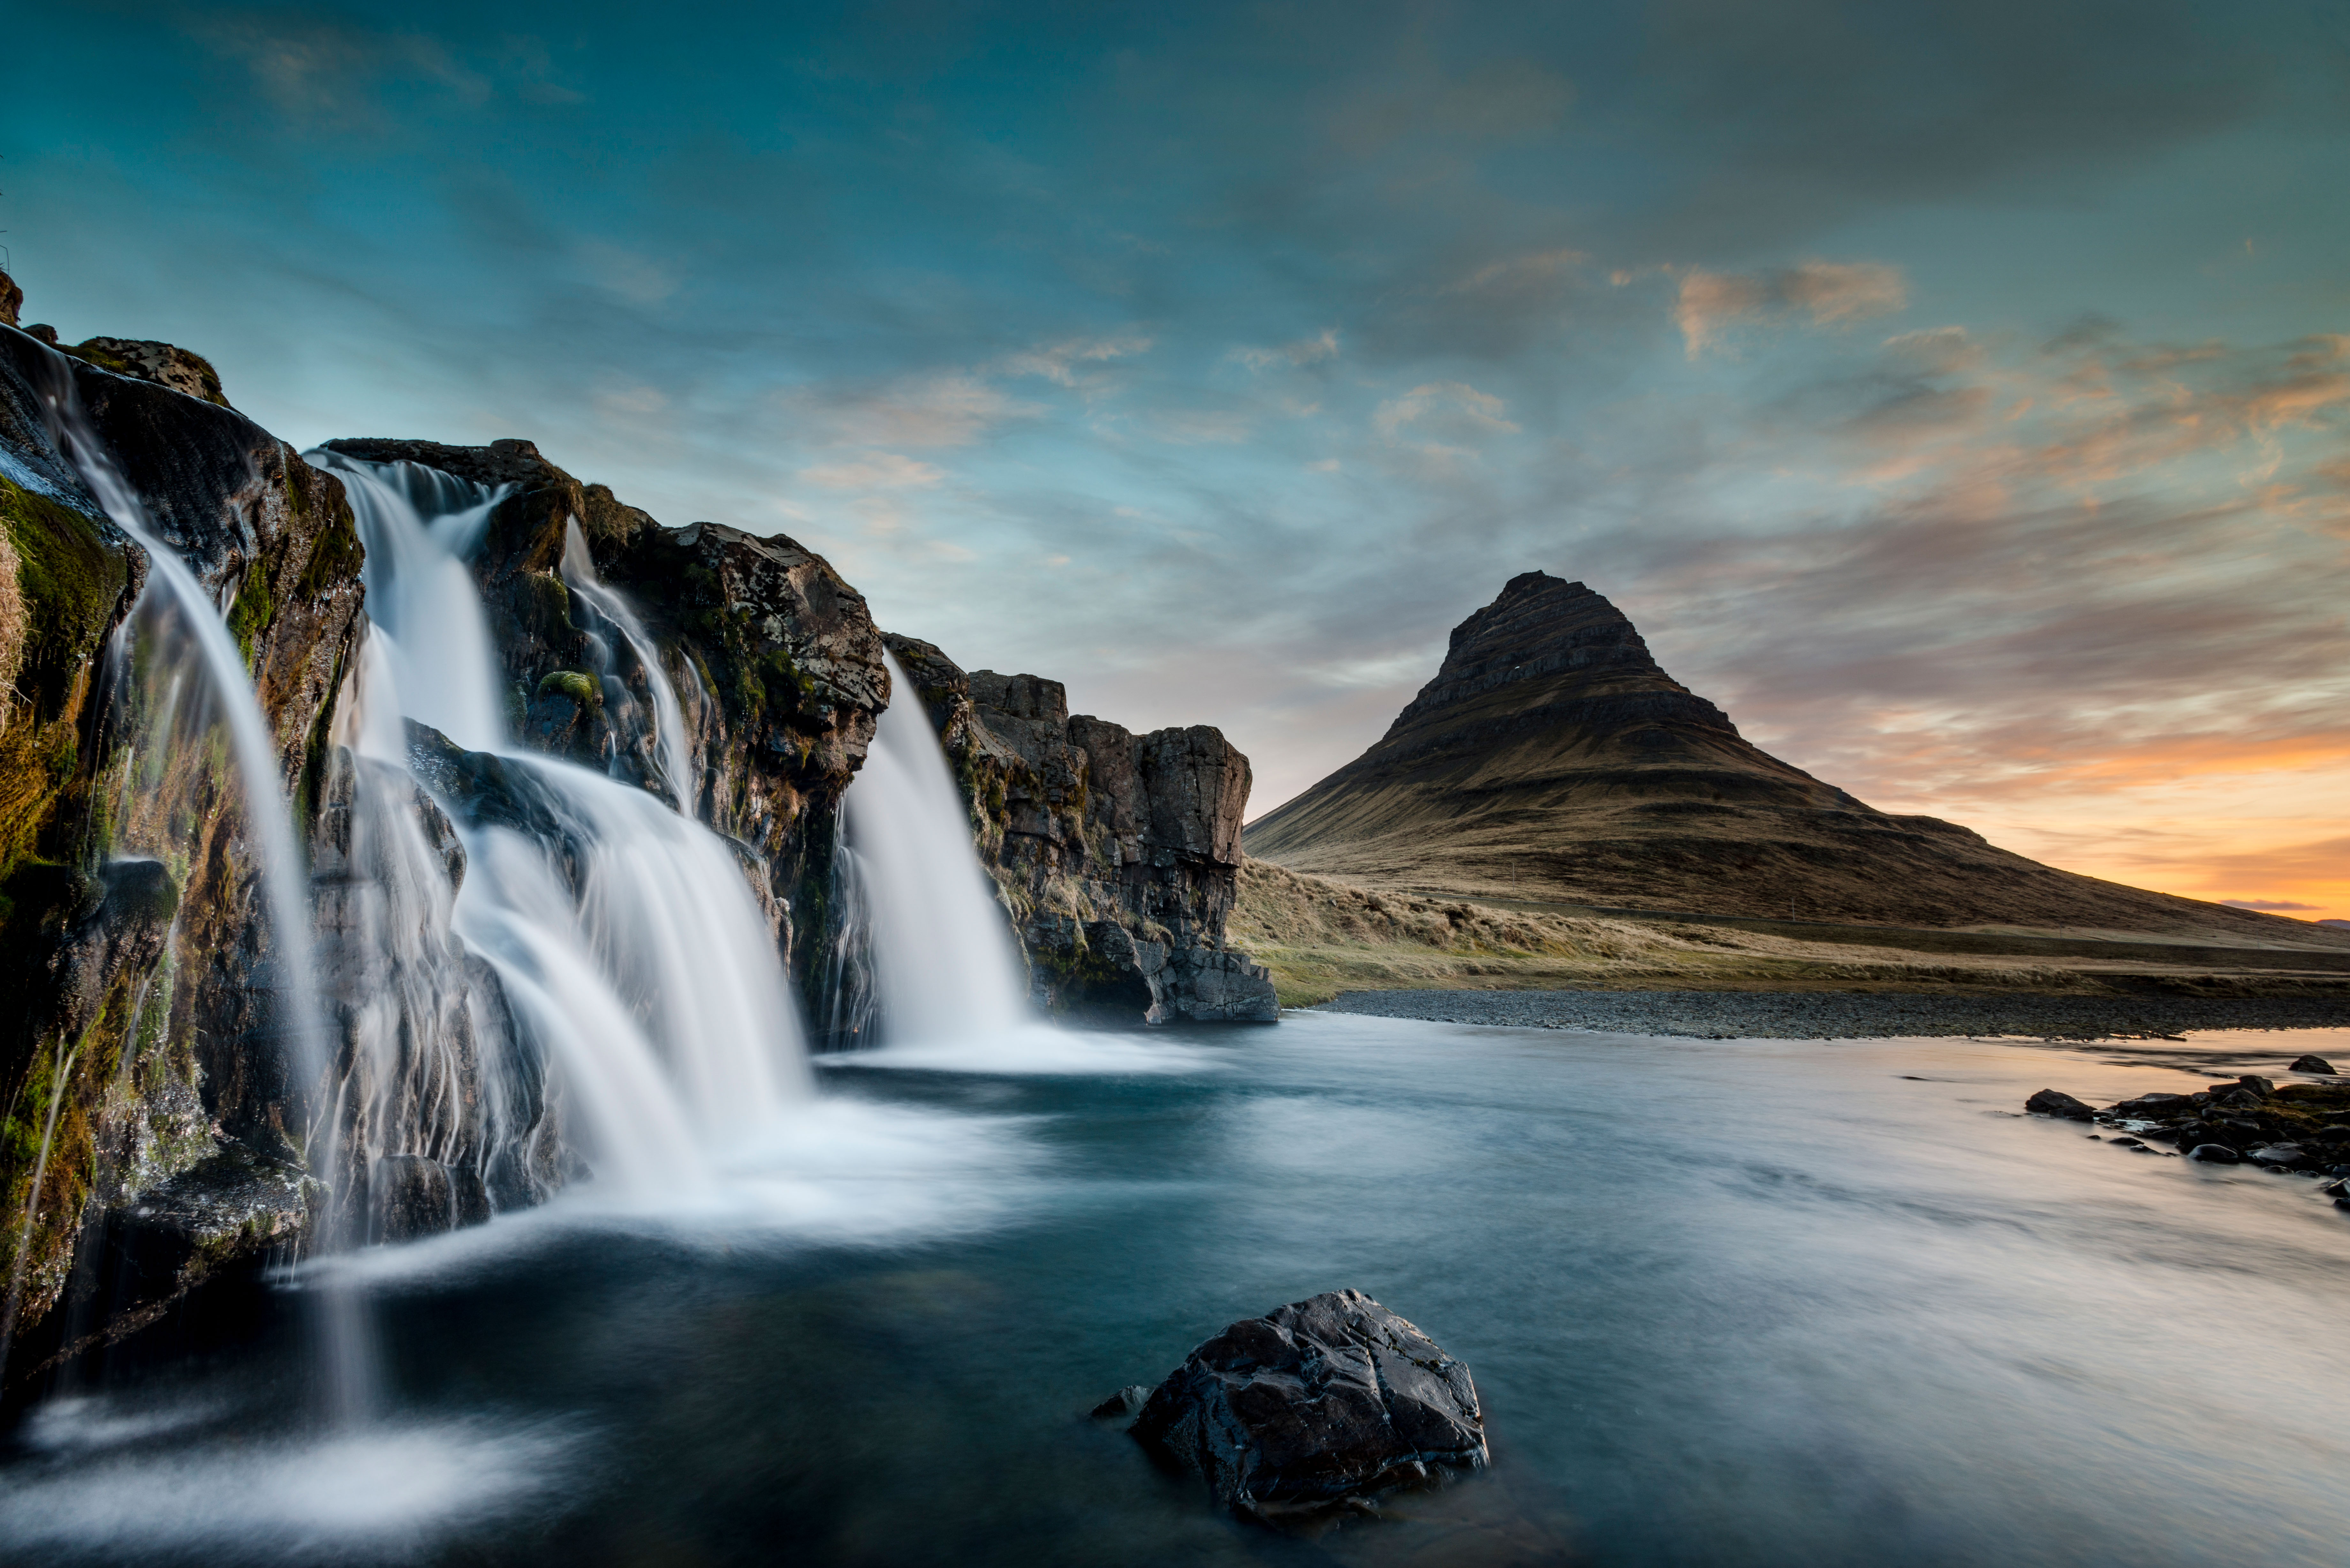 Kirkjufell mountain, Iceland, with a waterfall in the foreground at sunrise